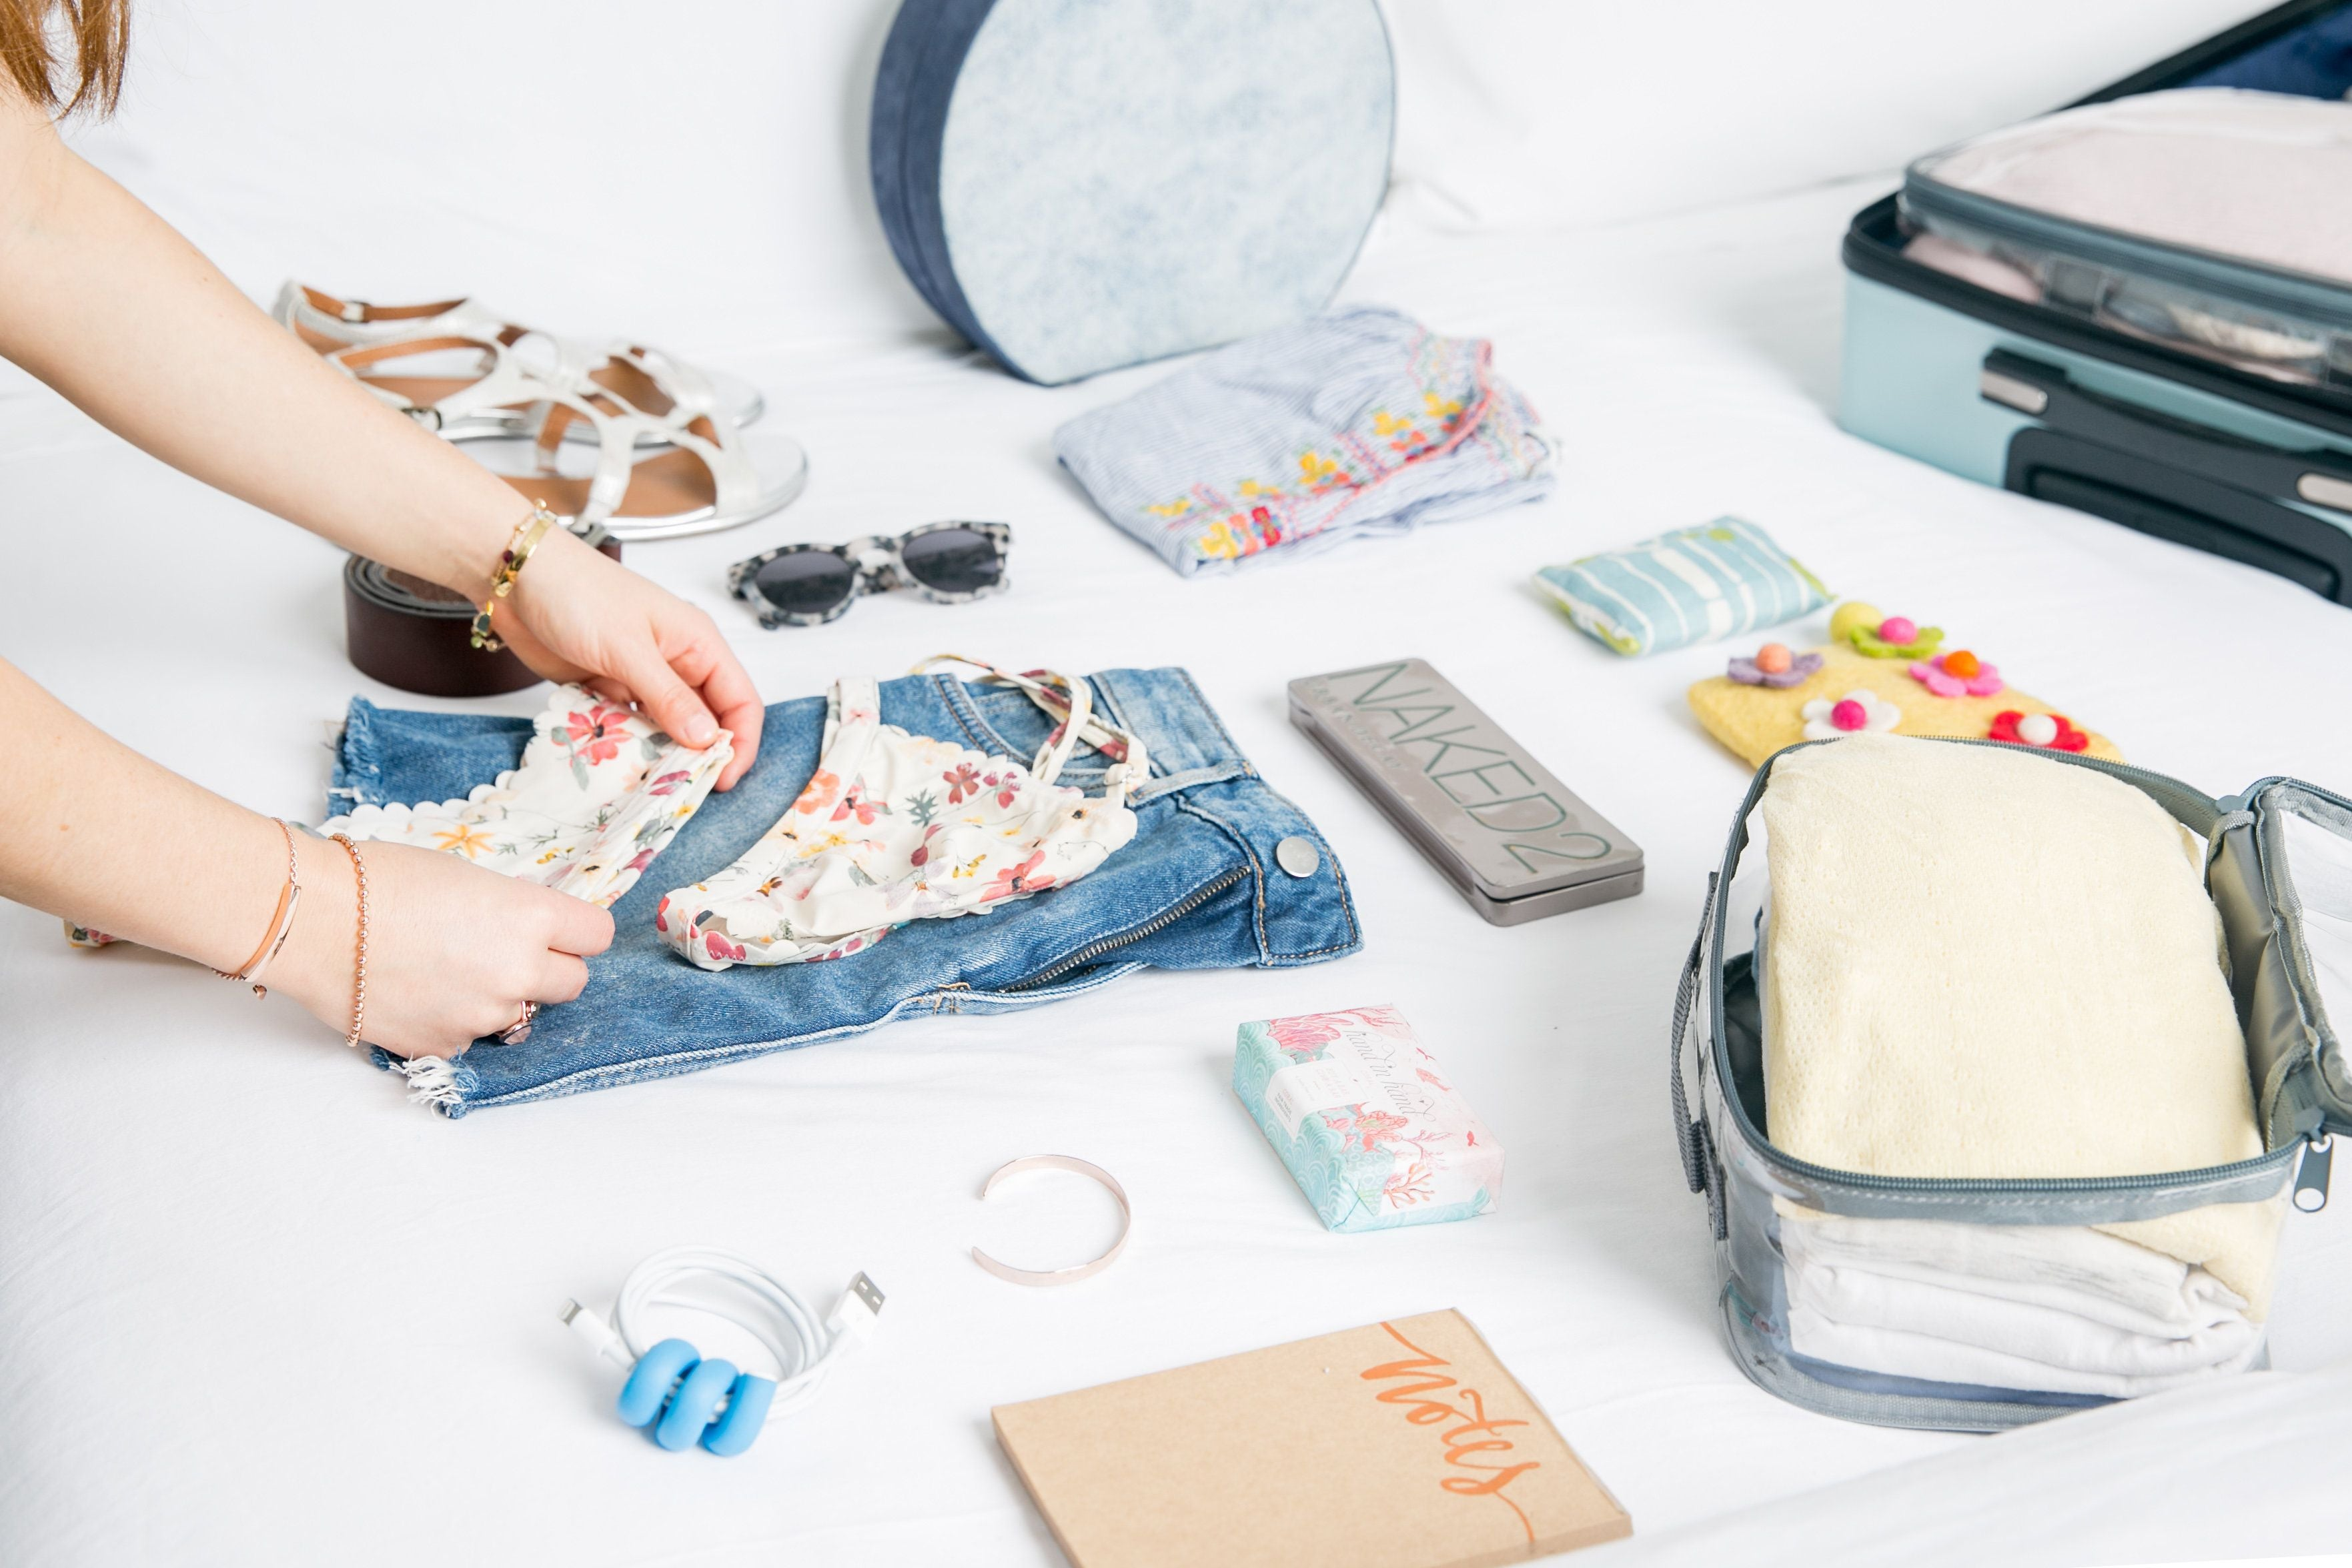 packing swimsuit, shorts, and other travel essentials in packing cubes